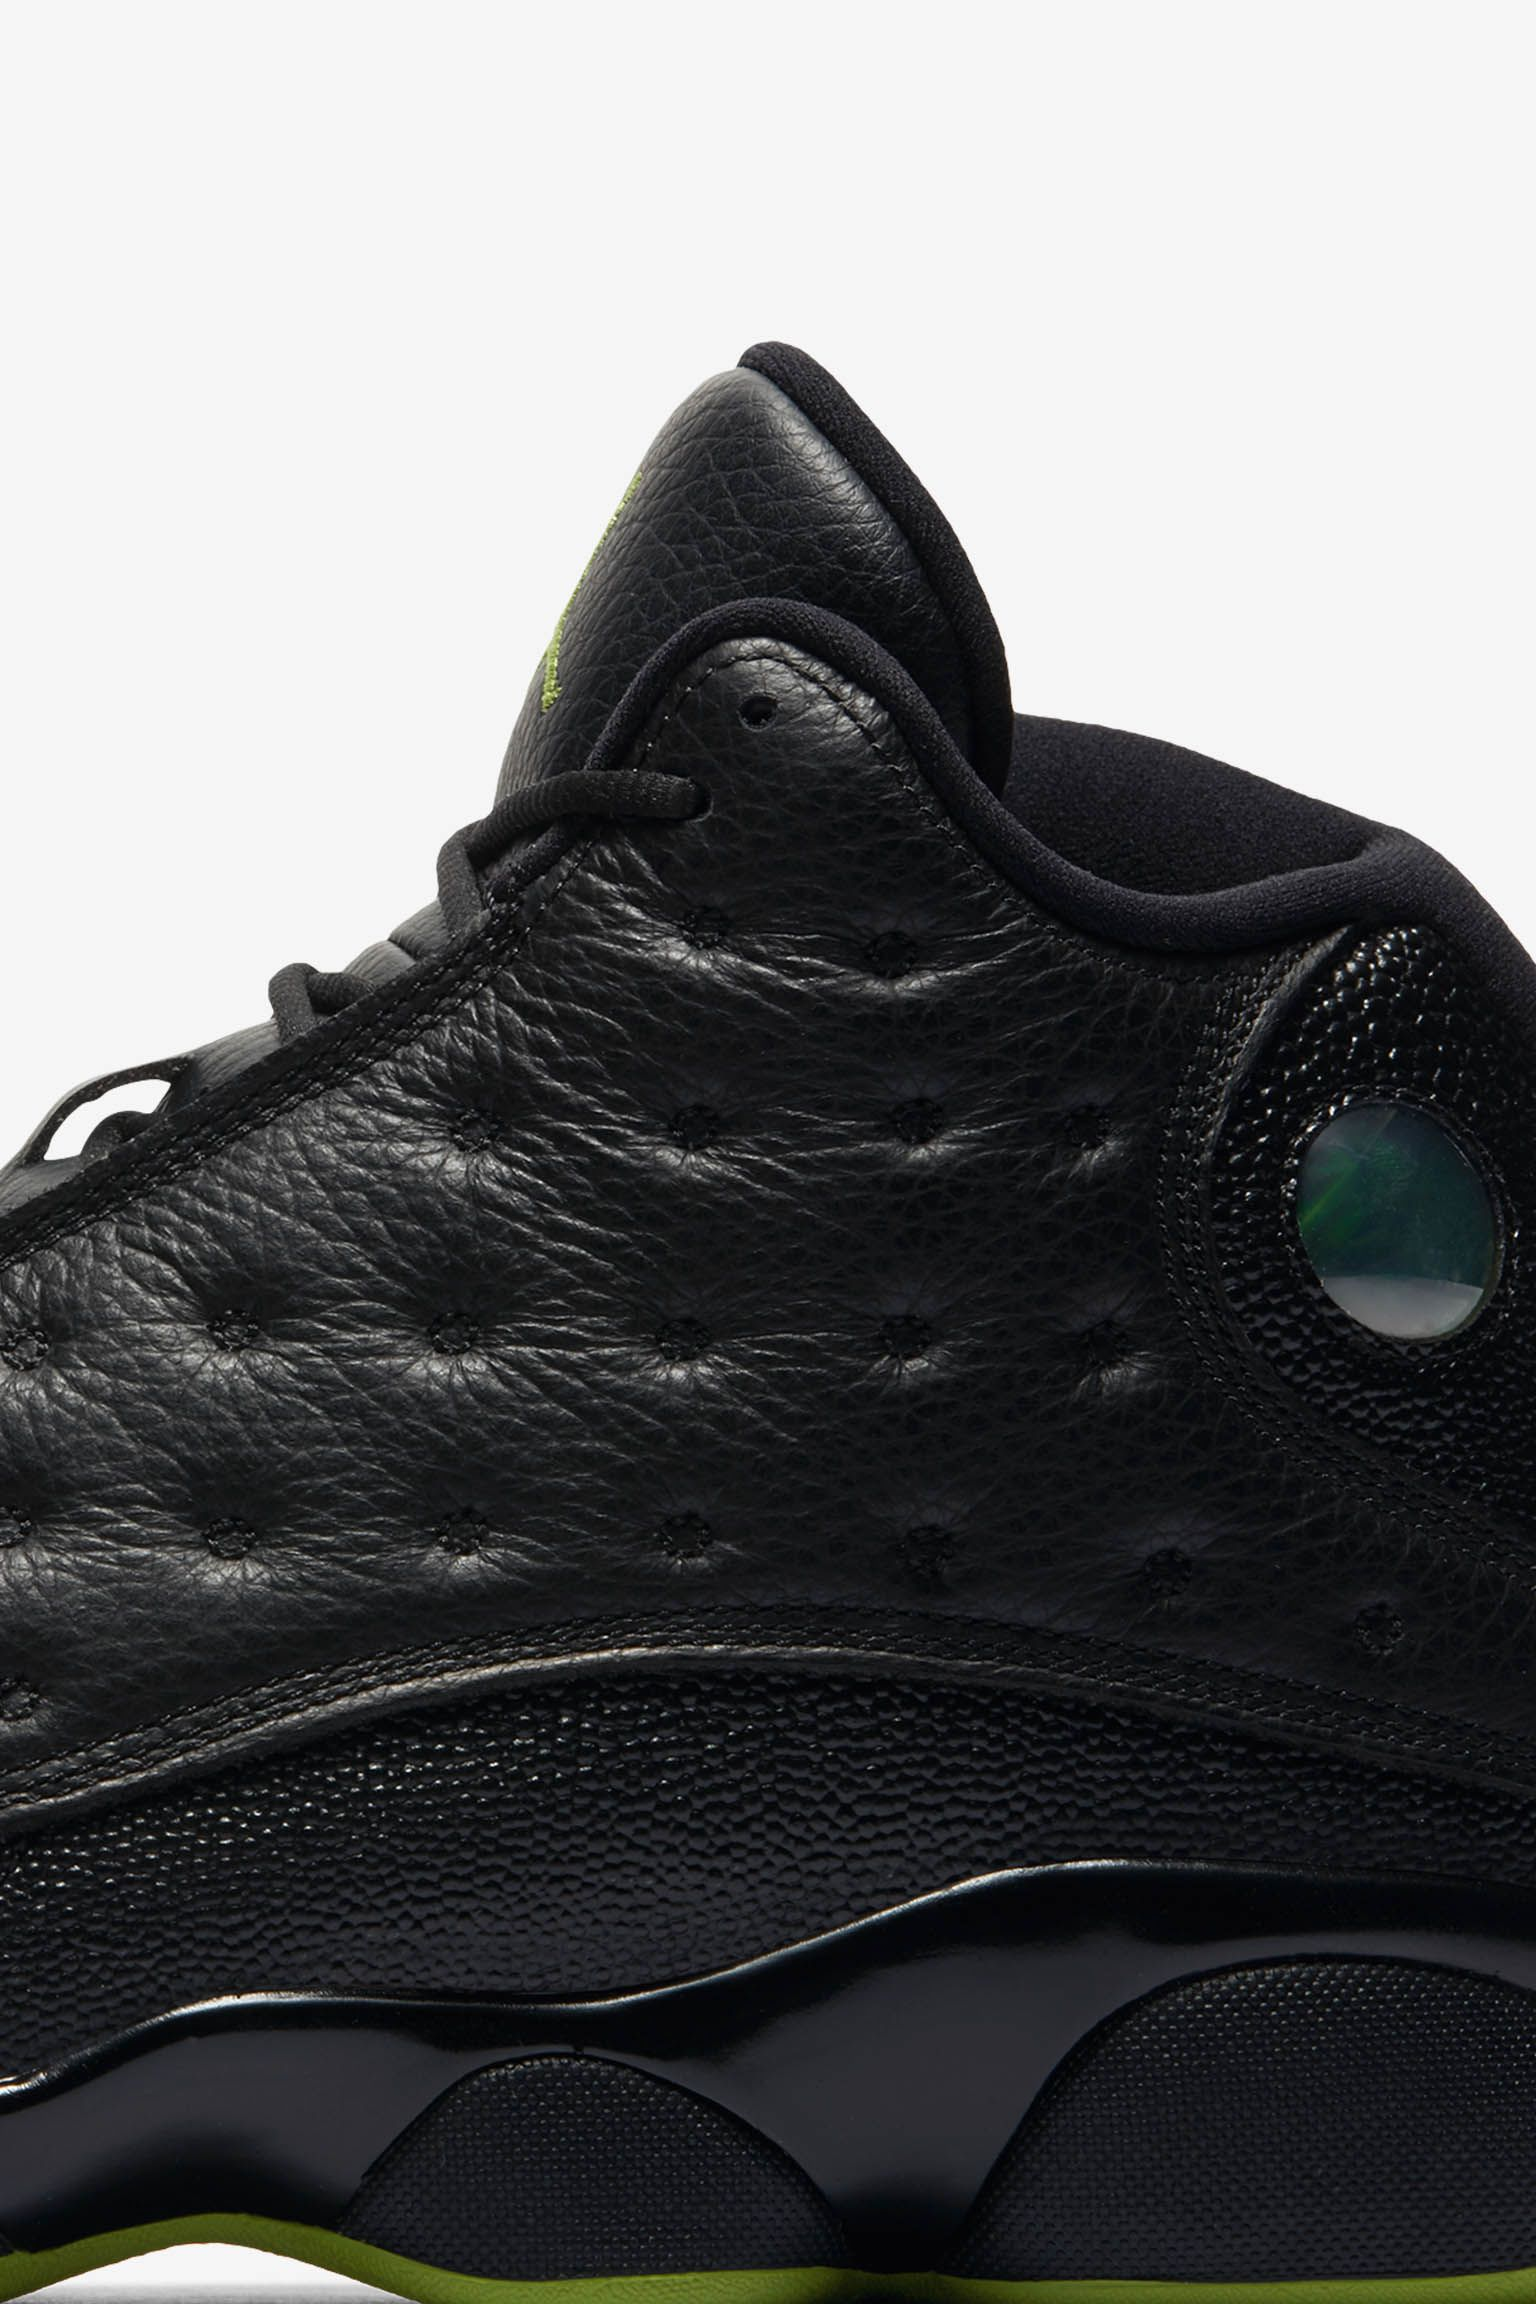 45839612a75bf3 ... coupon code for air jordan 13 black altitude green release date 00a5f  b462f